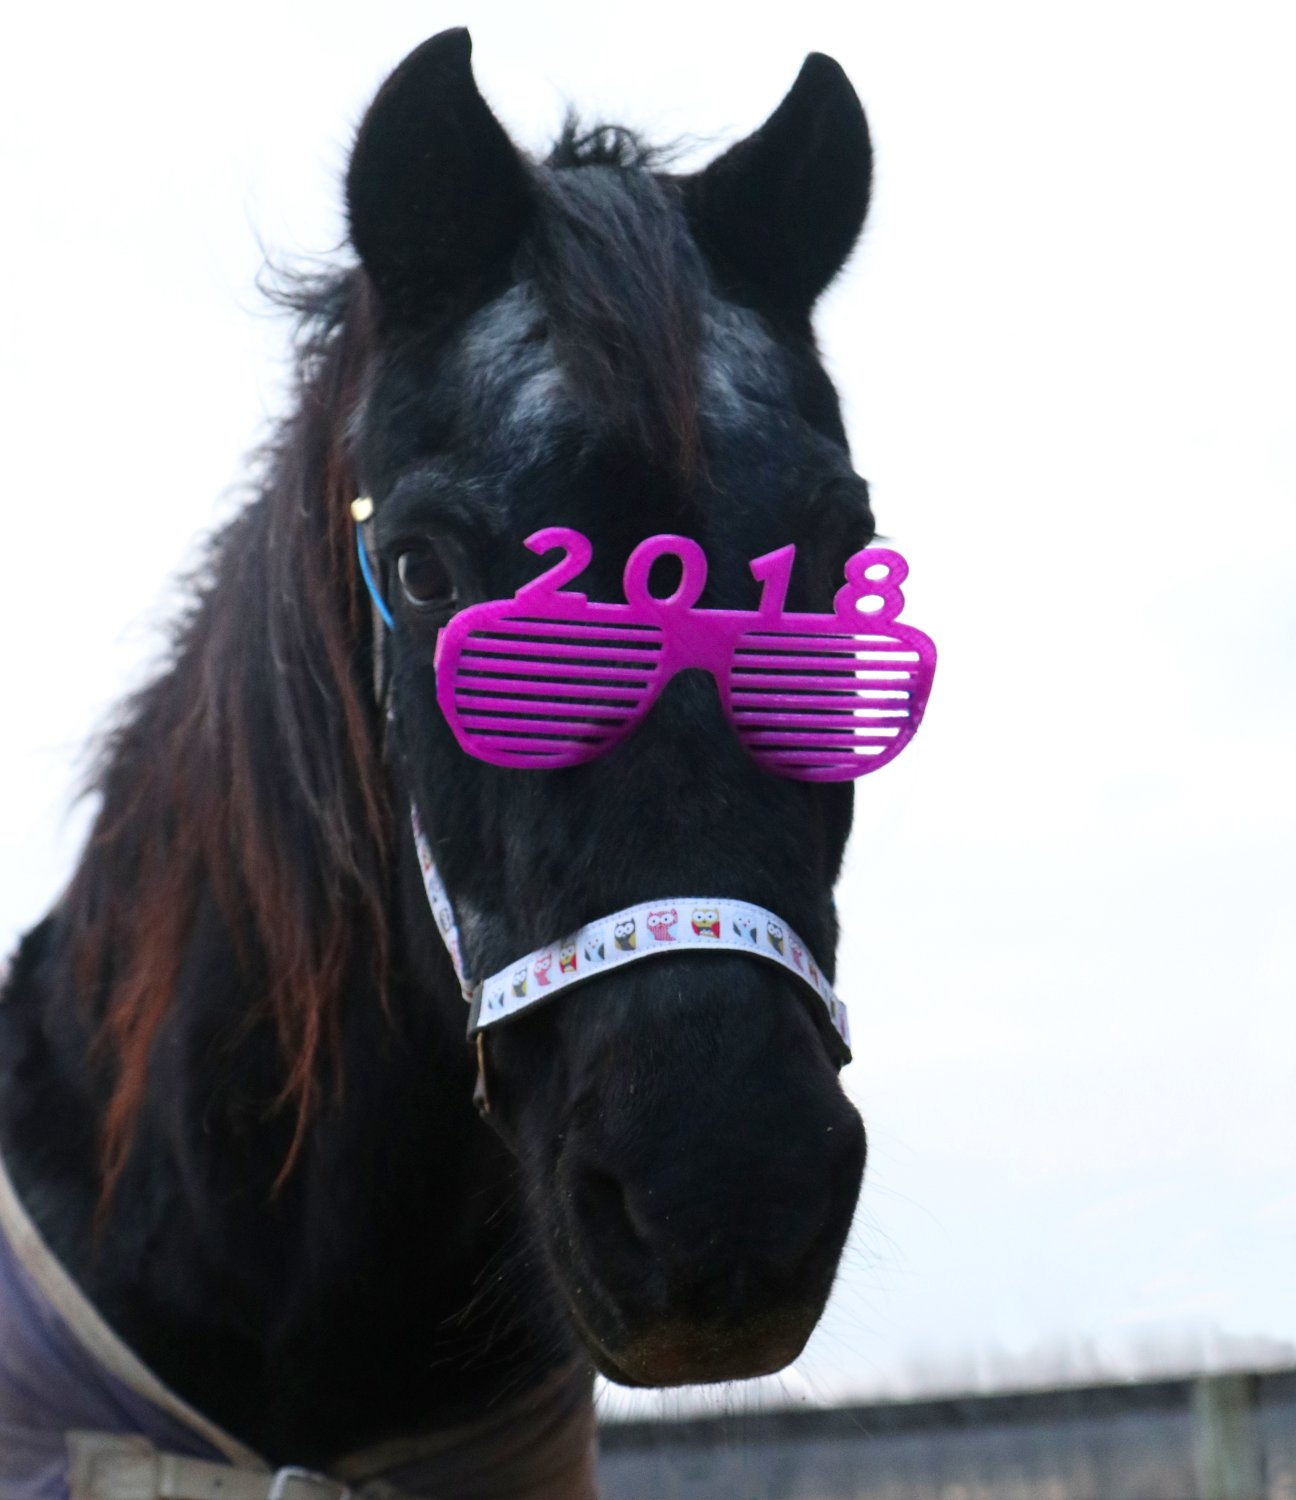 2018 New Year Horse